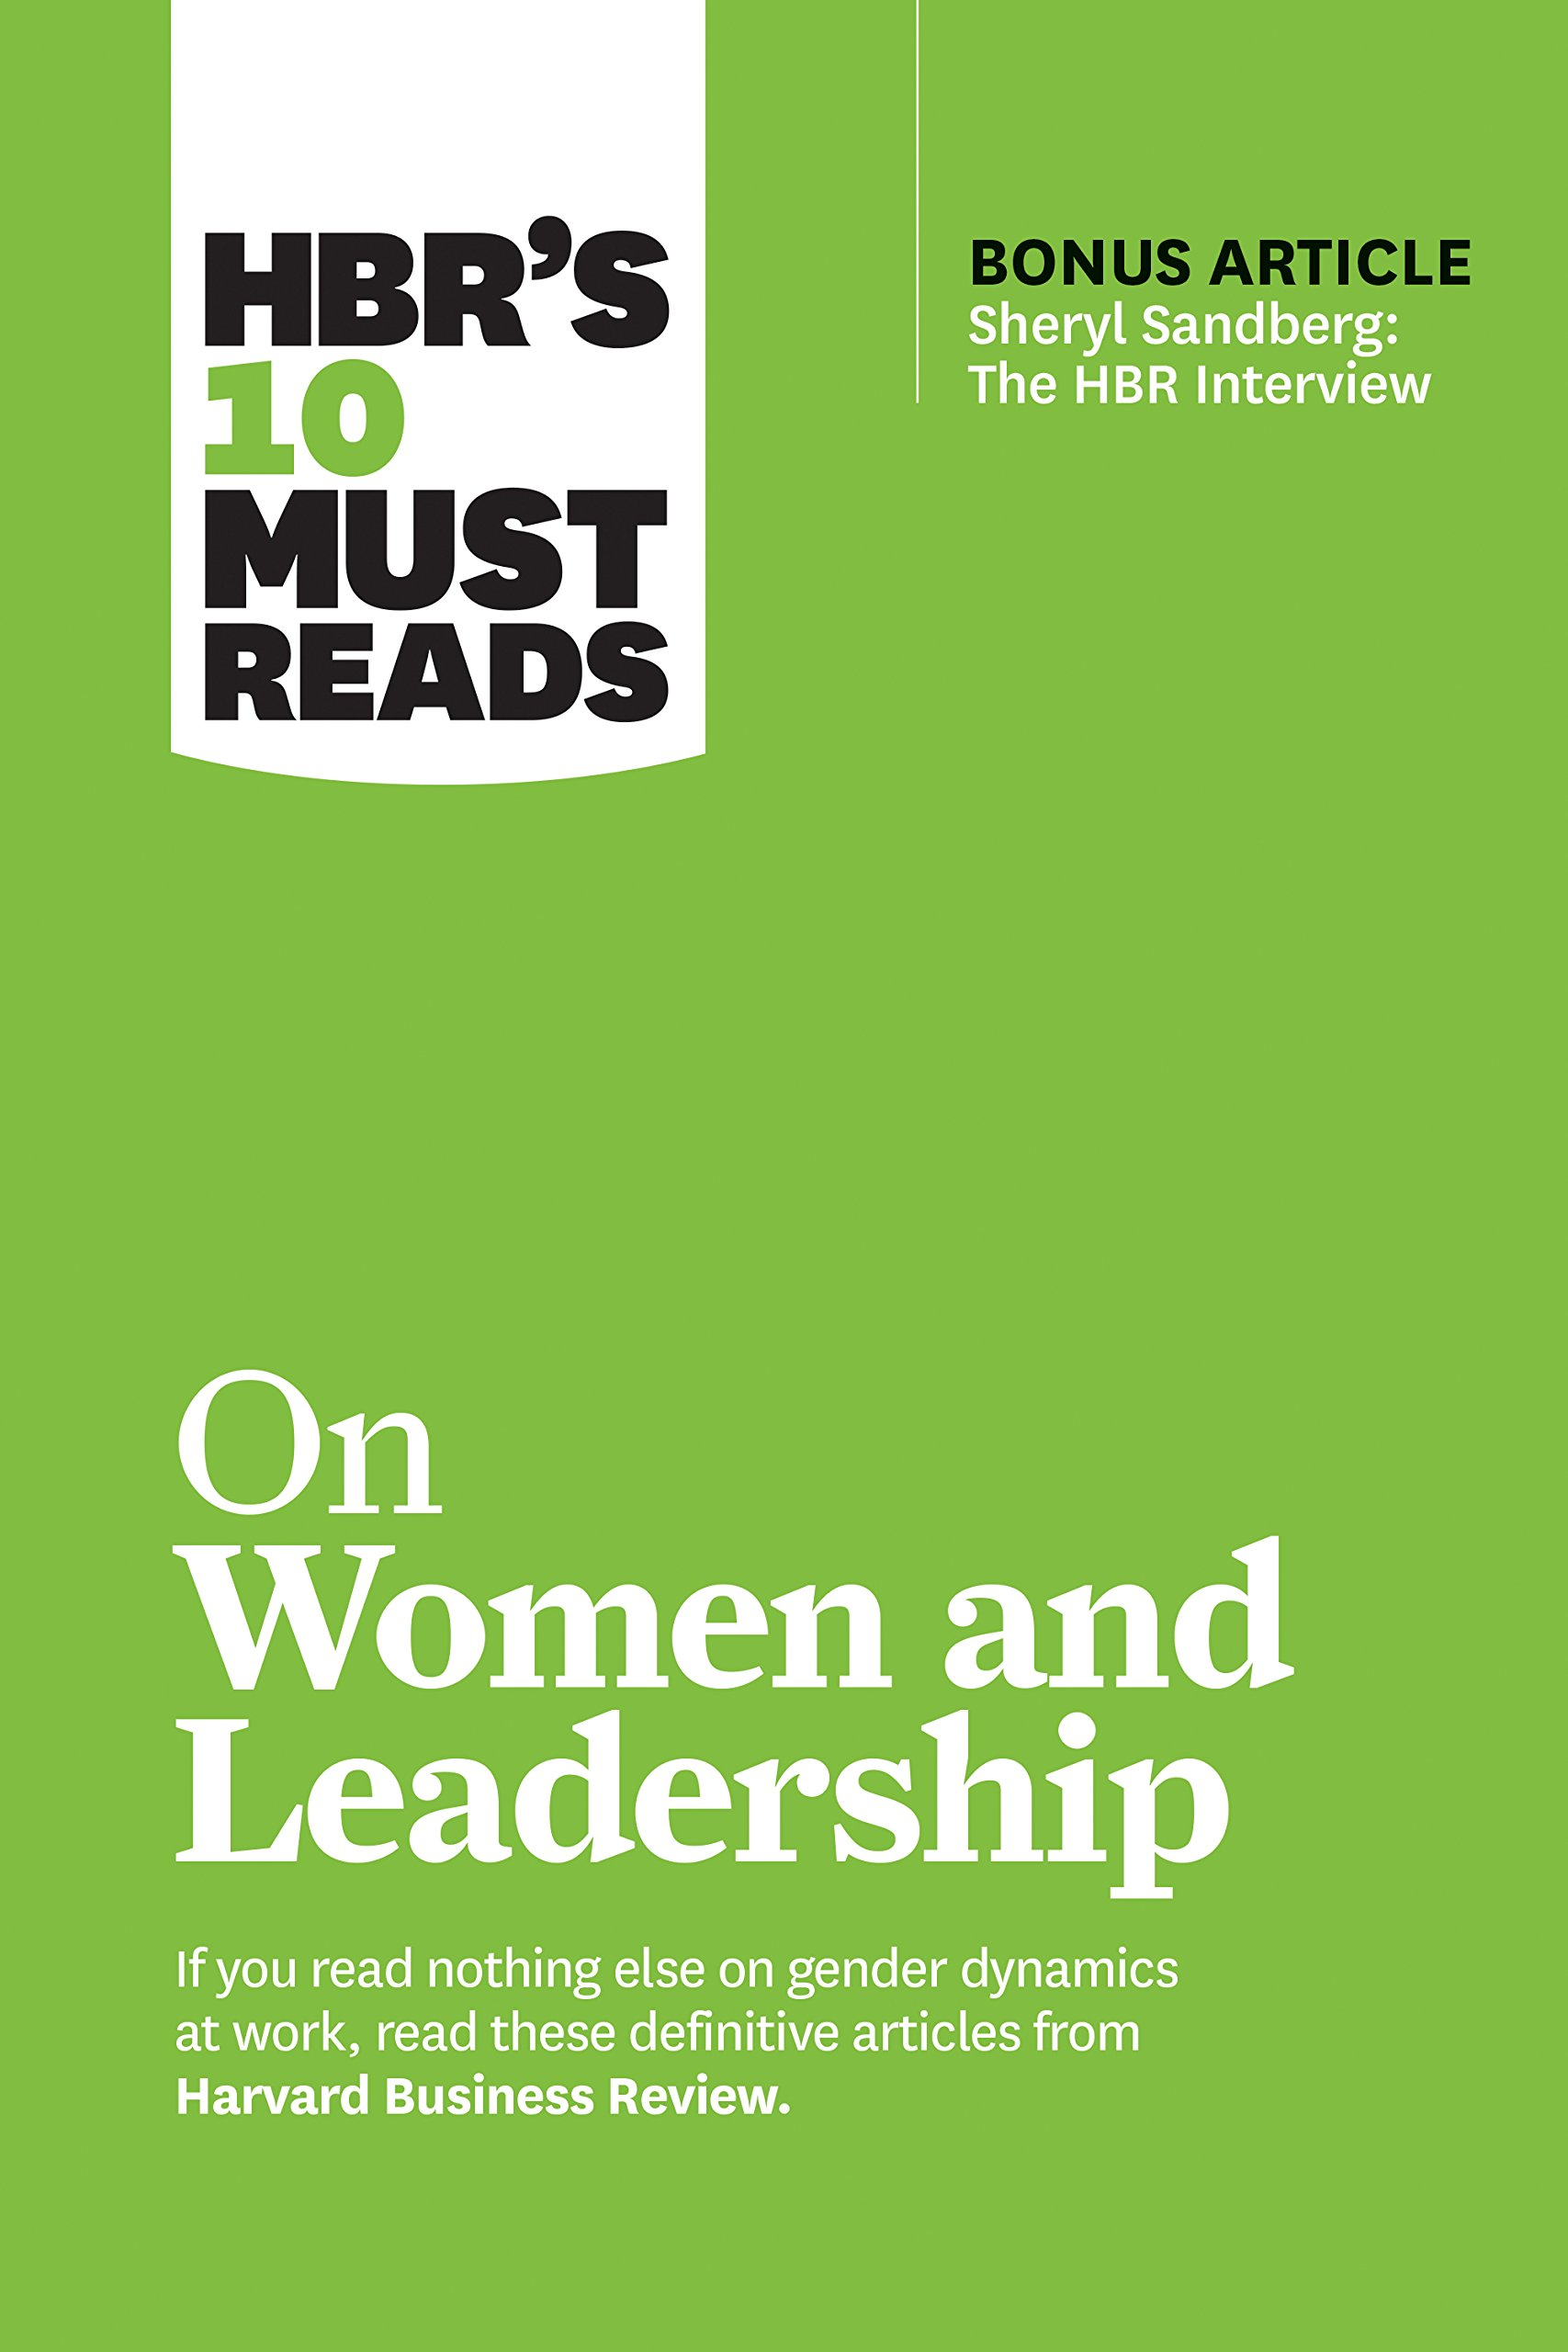 HBR's 10 Must Reads on Women and Leadership (with bonus